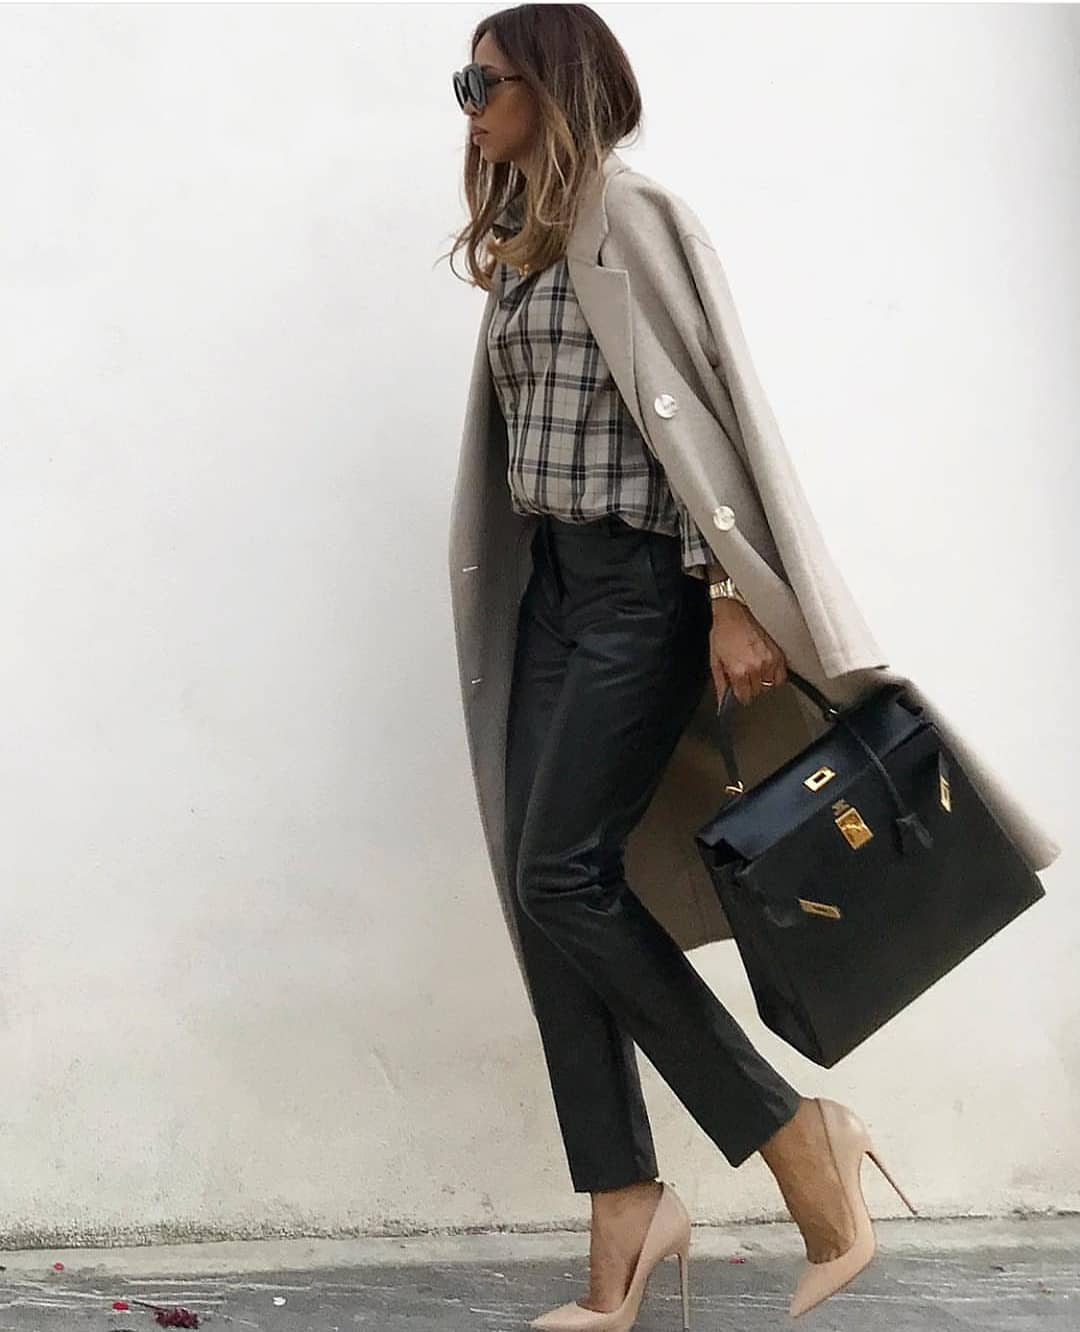 Grey Coat With Plaid Shirt And Black Leather Pants For Fall 2019